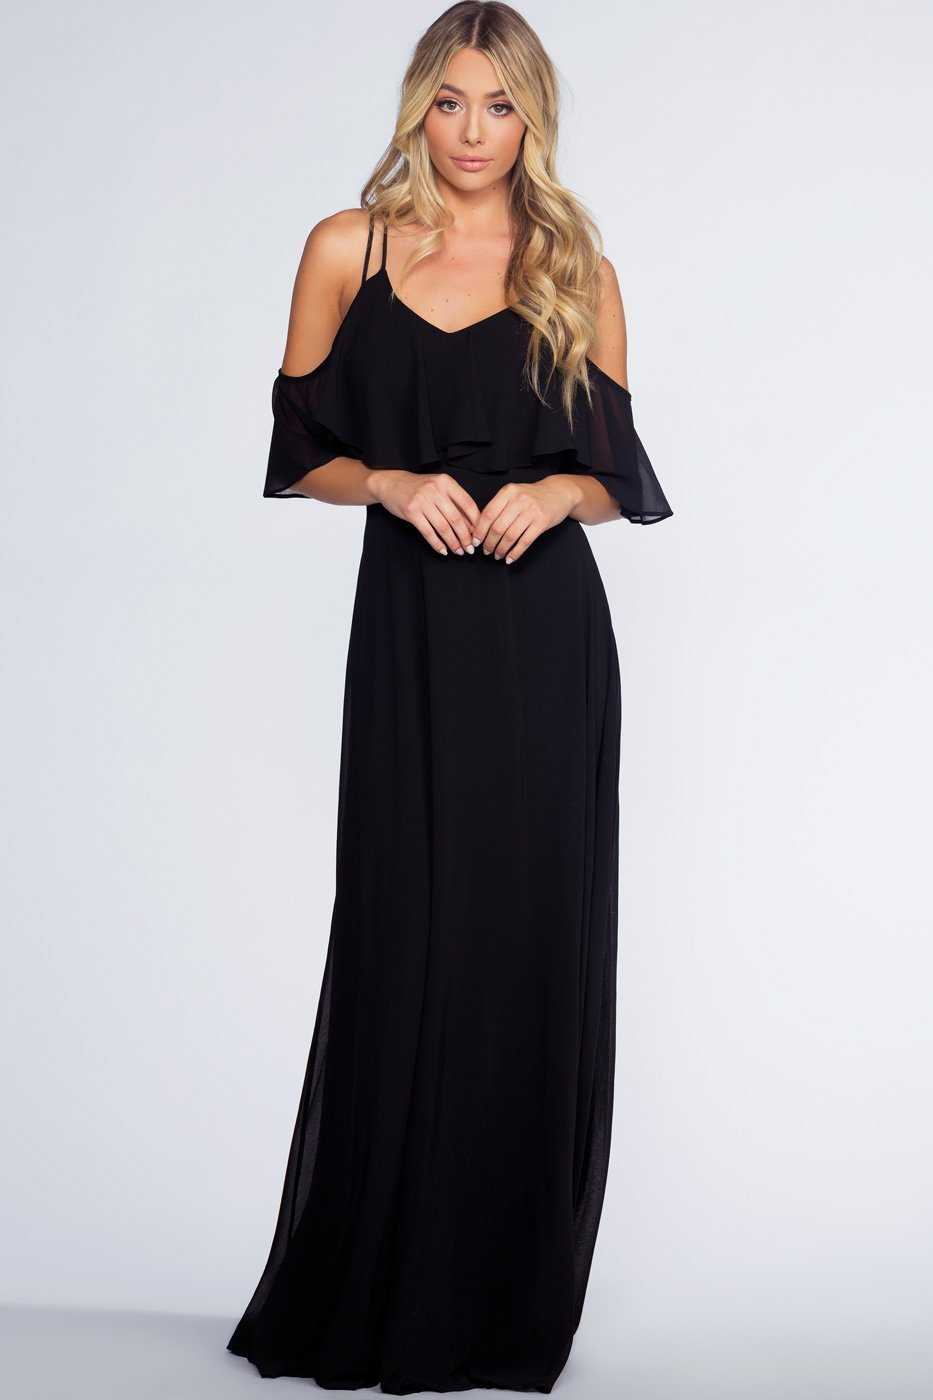 Dresses - Mythical Romance Maxi Dress - Black